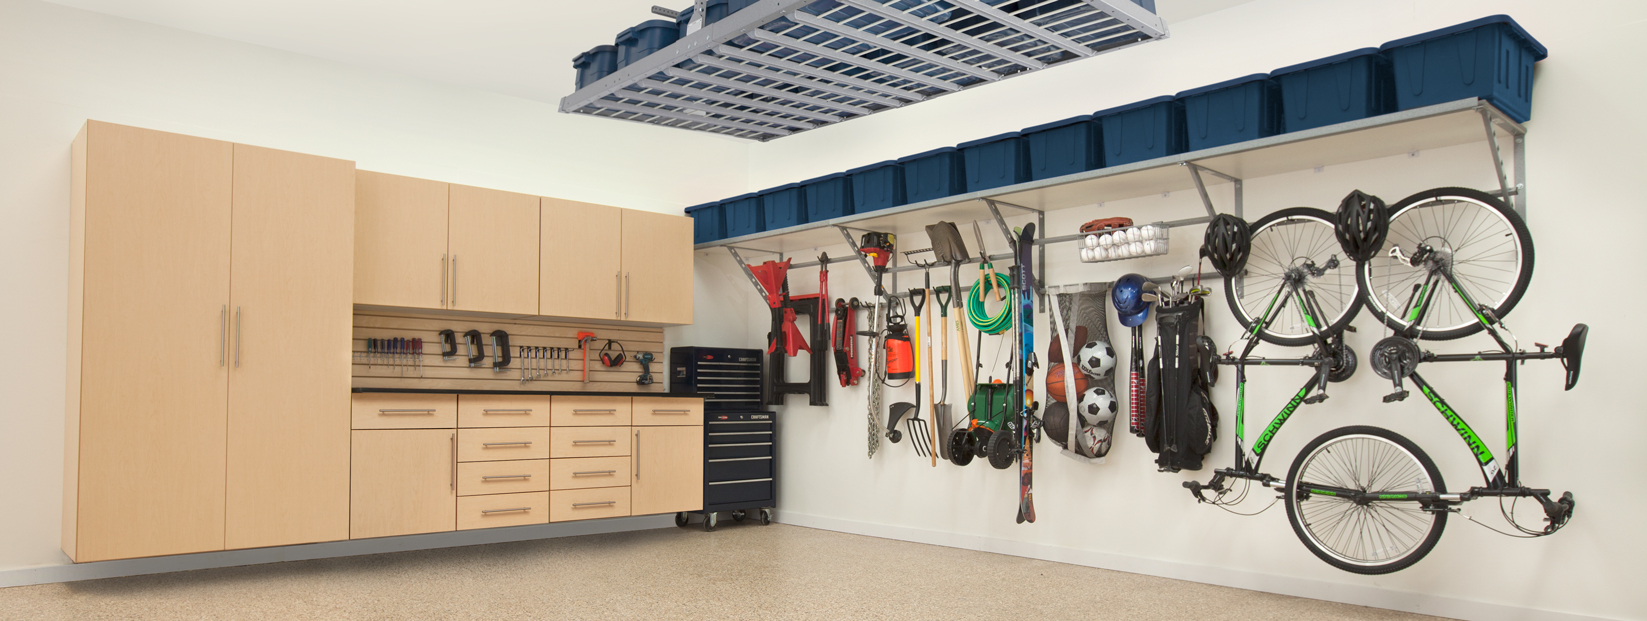 Garage Storage Delray Beach